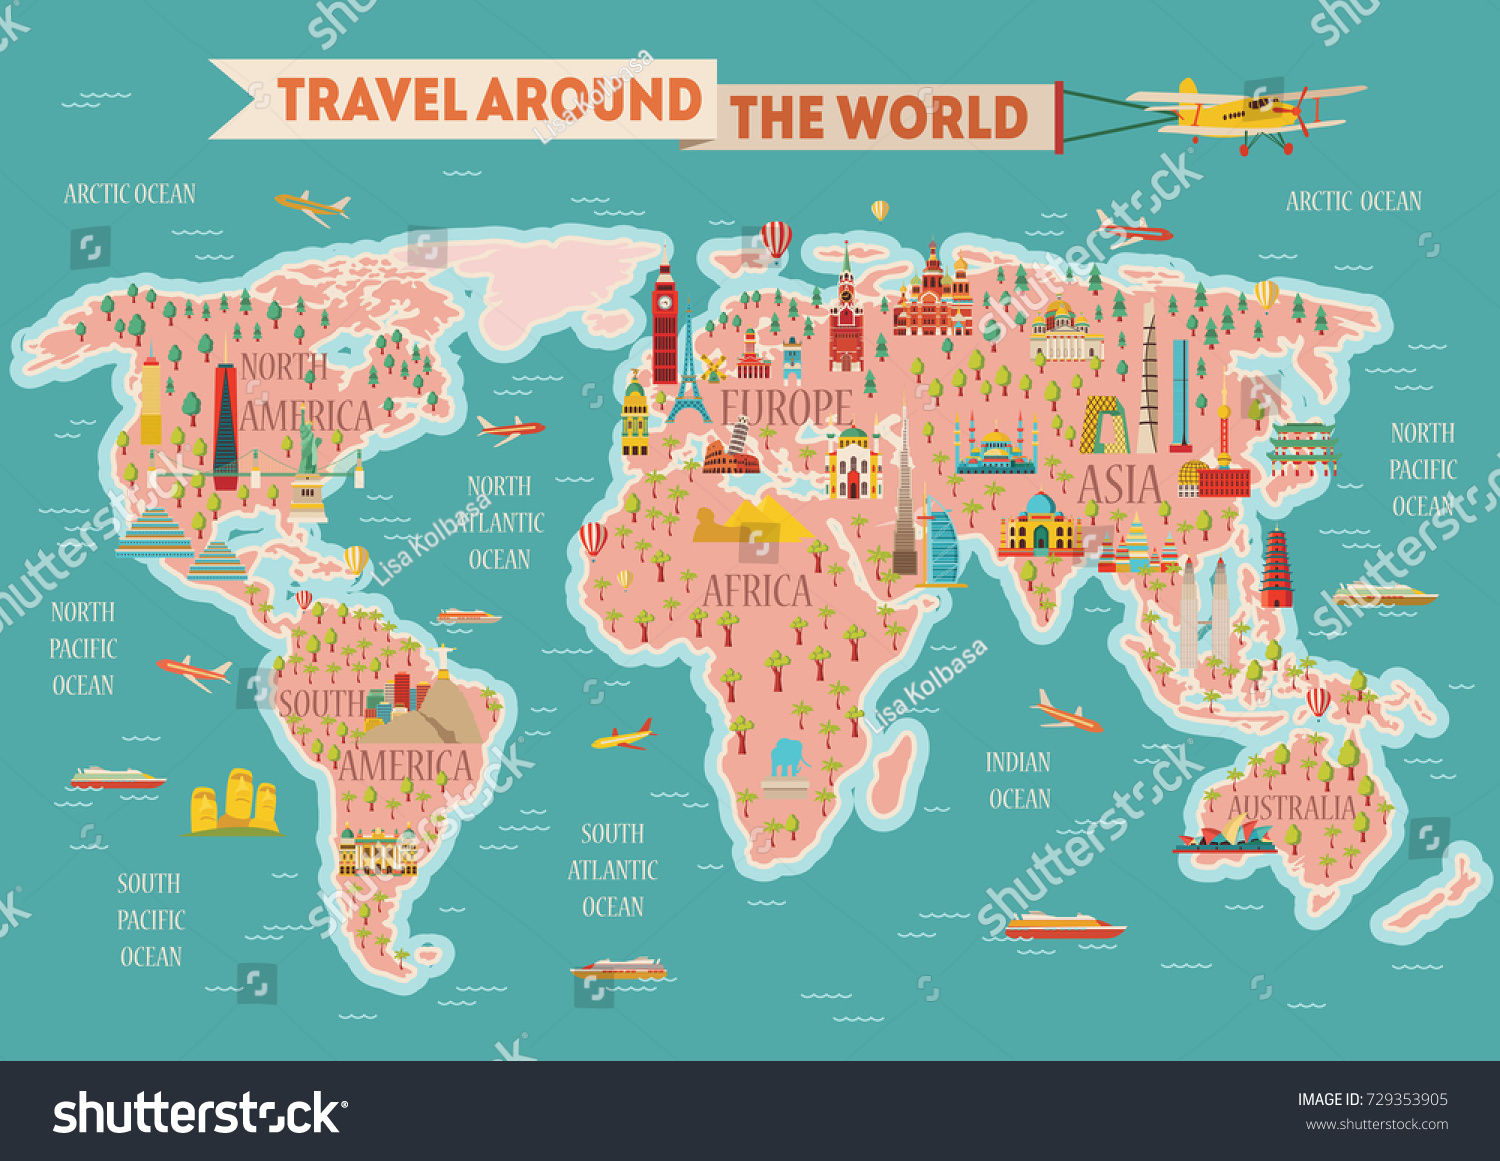 World travel map poster travel tourism stock vector 729353905 world travel map poster travel and tourism background vector illustration gumiabroncs Choice Image